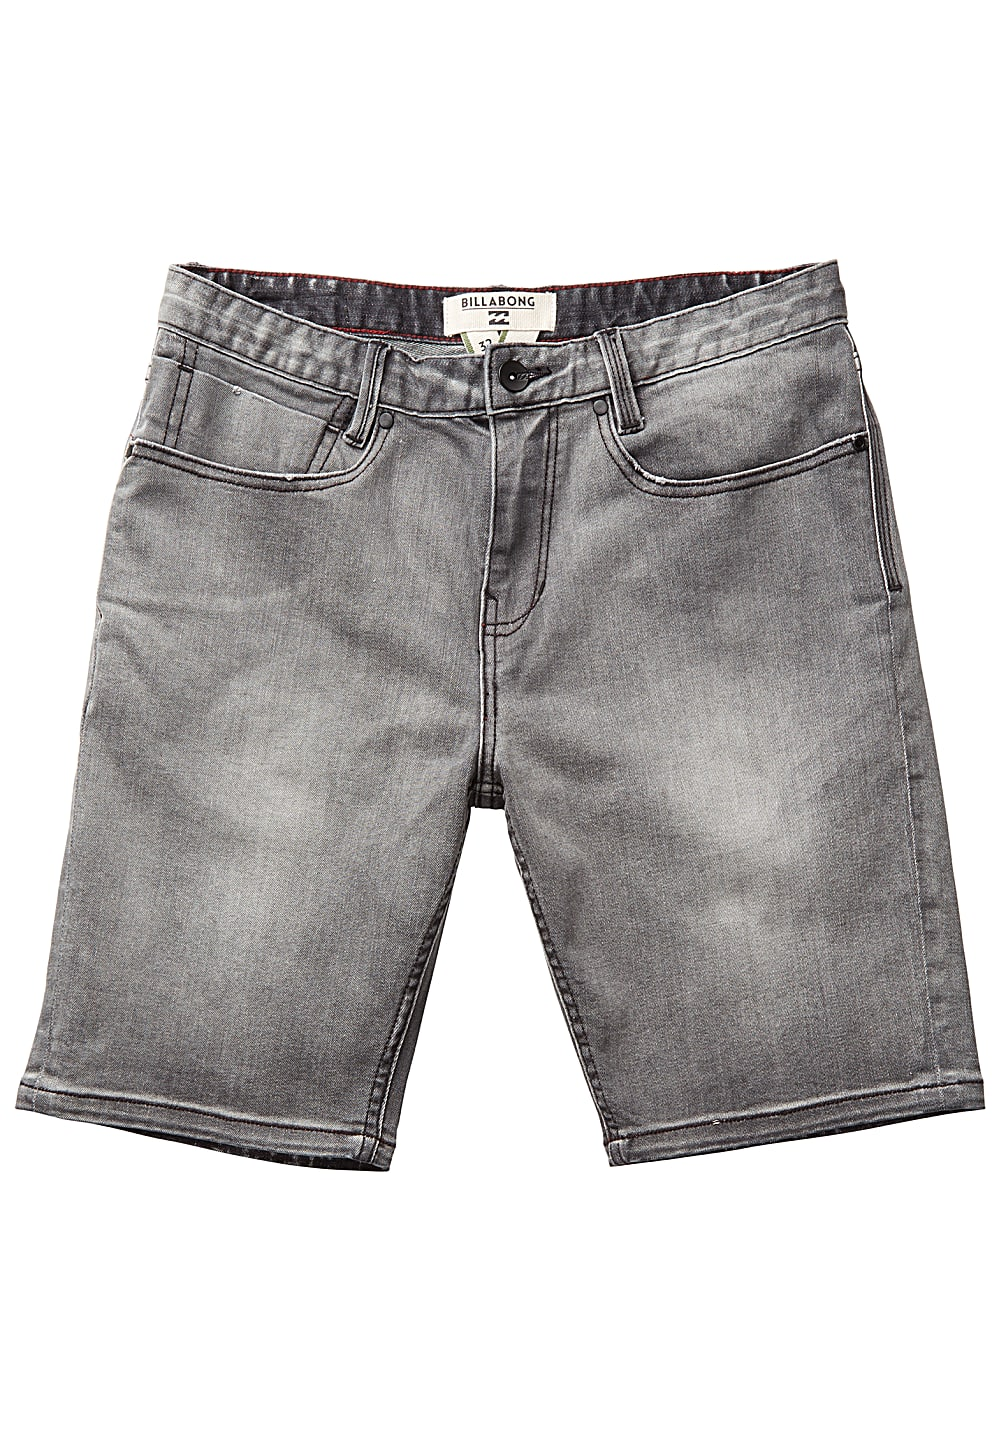 Billabong Outsider 5 Pockets Denim - Shorts für Herren Schwarz